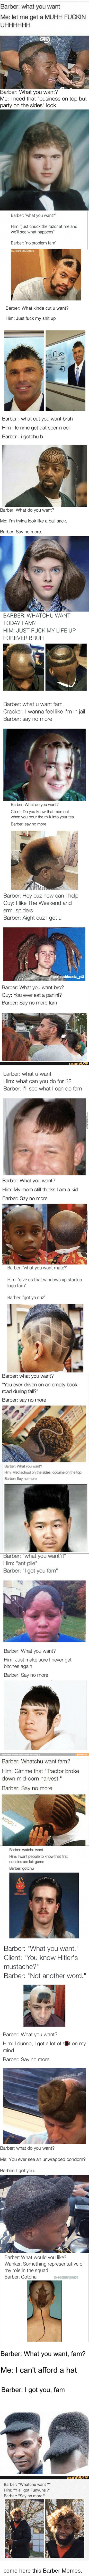 Barber What Do You Want